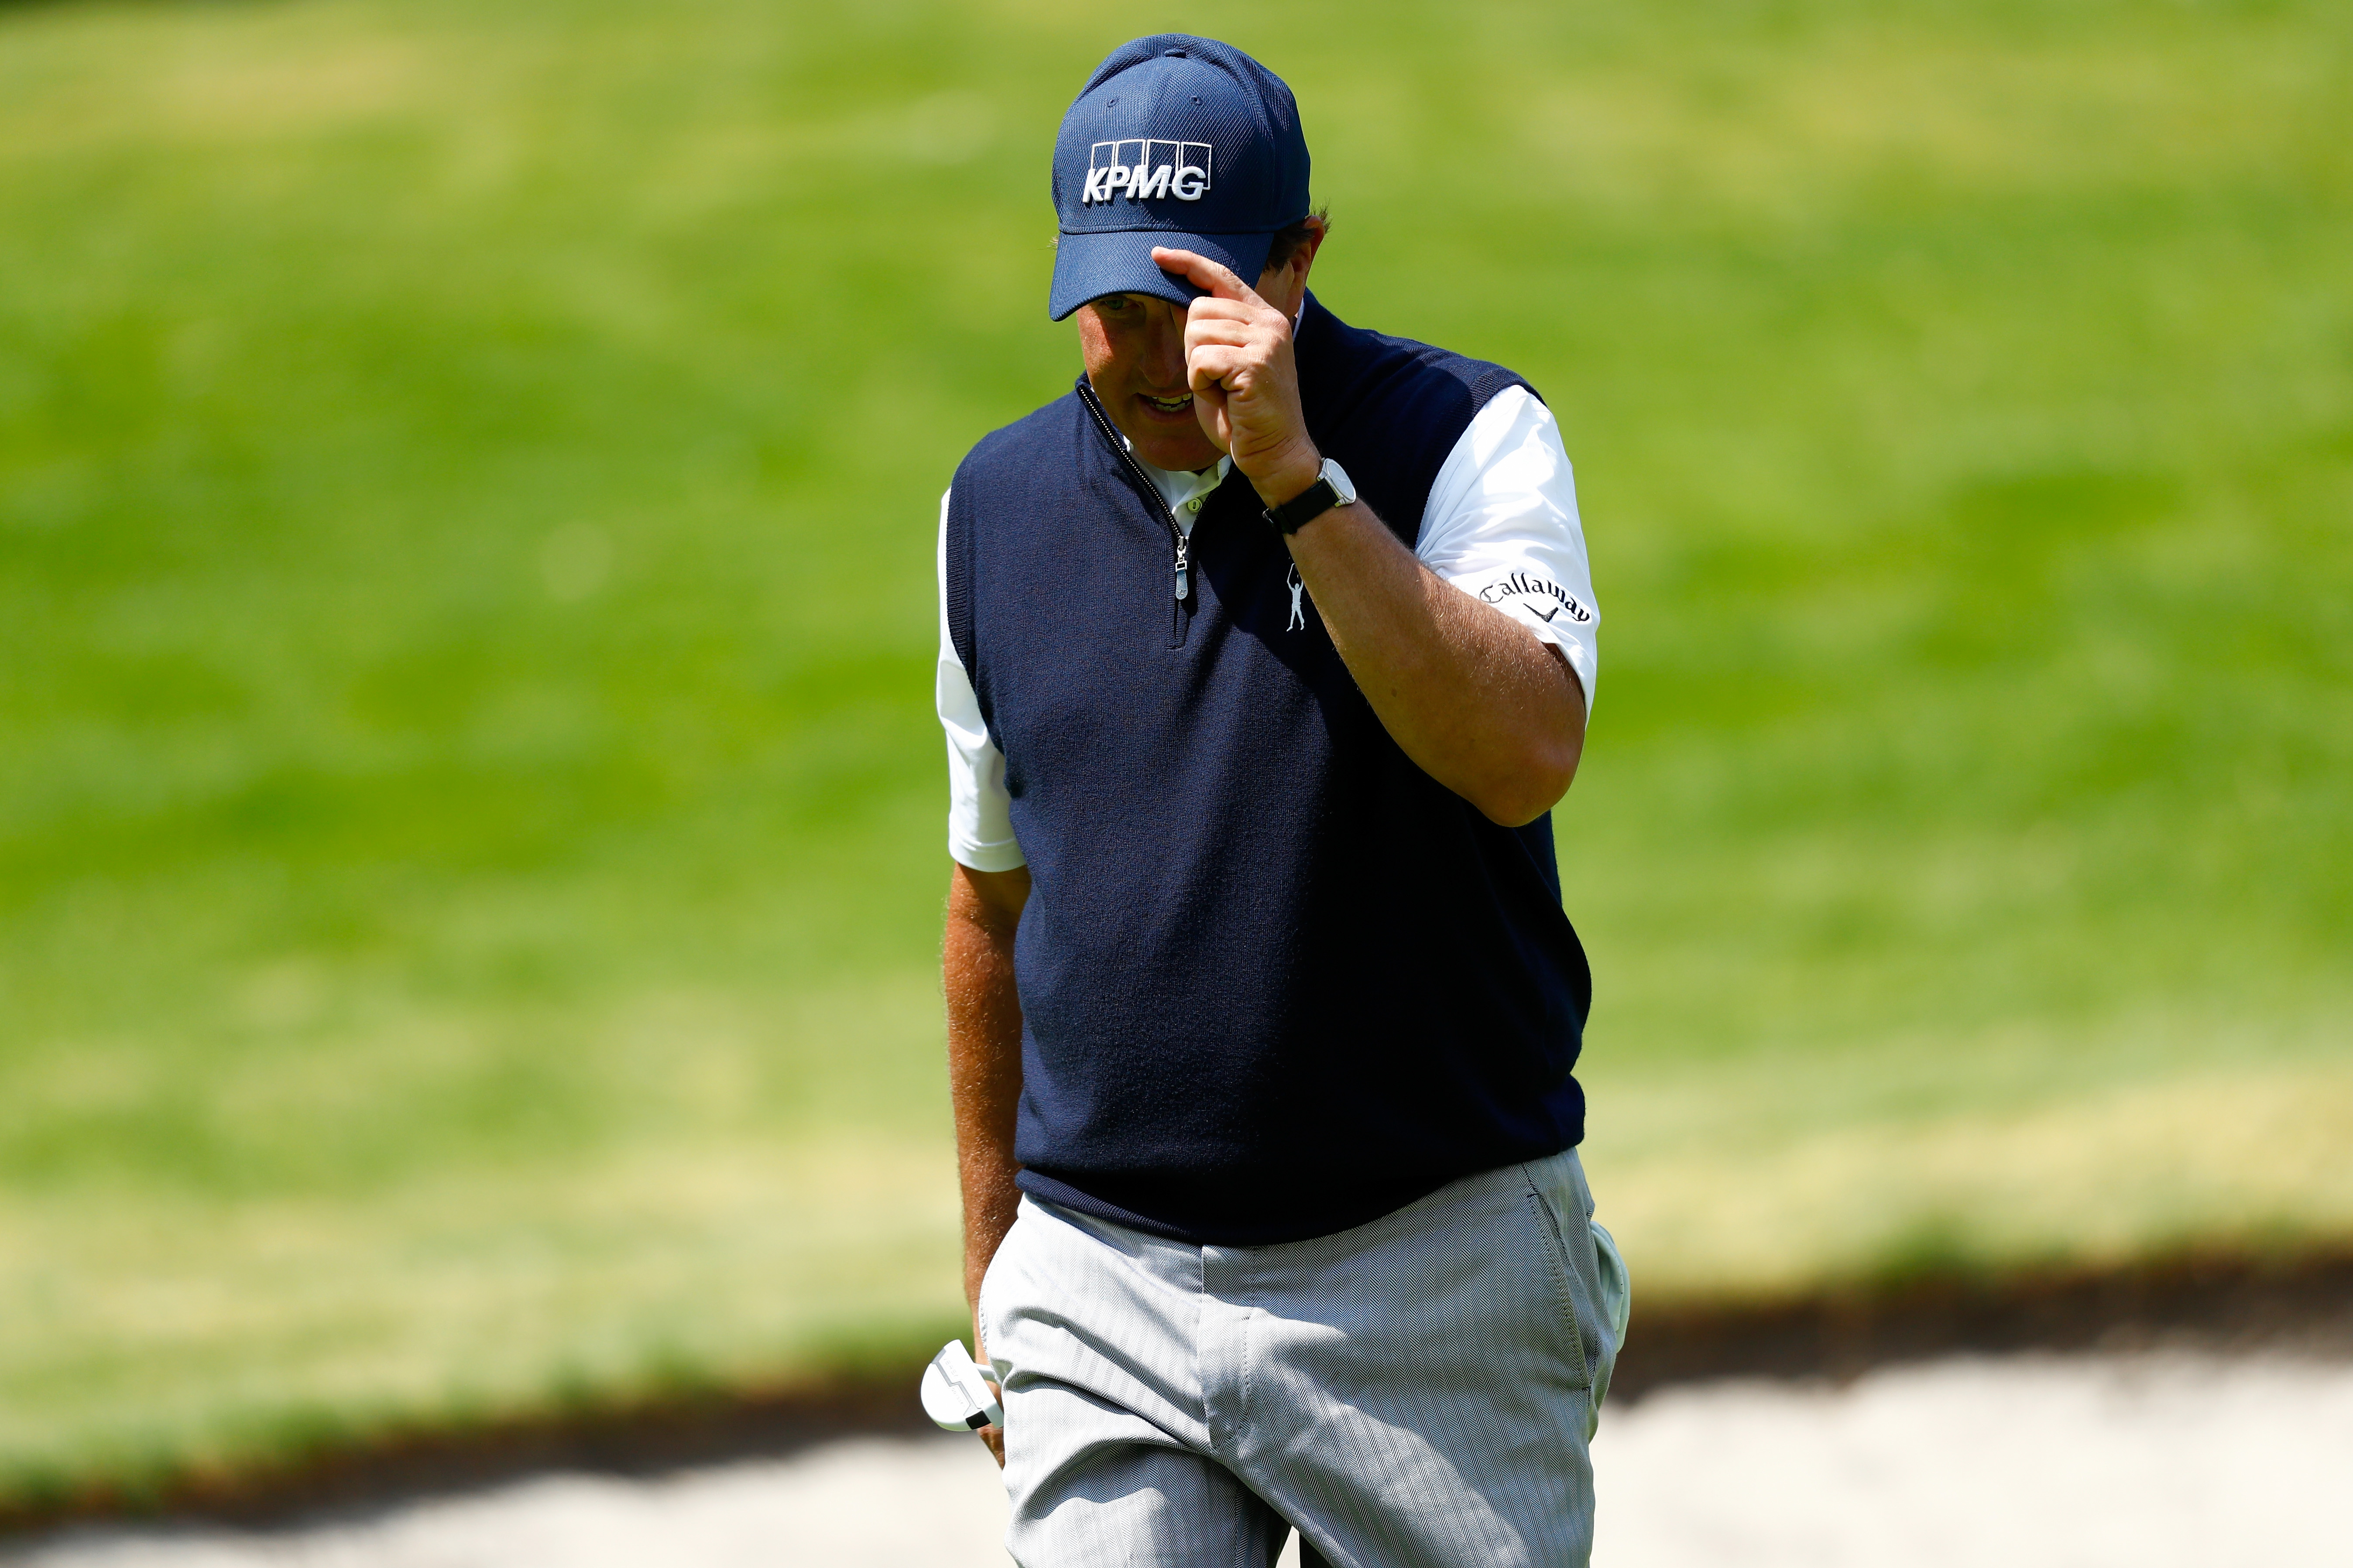 Phil Mickelson was ordered to forfeit $1 million after the SEC named him as a relief defendant in a civil lawsuit.